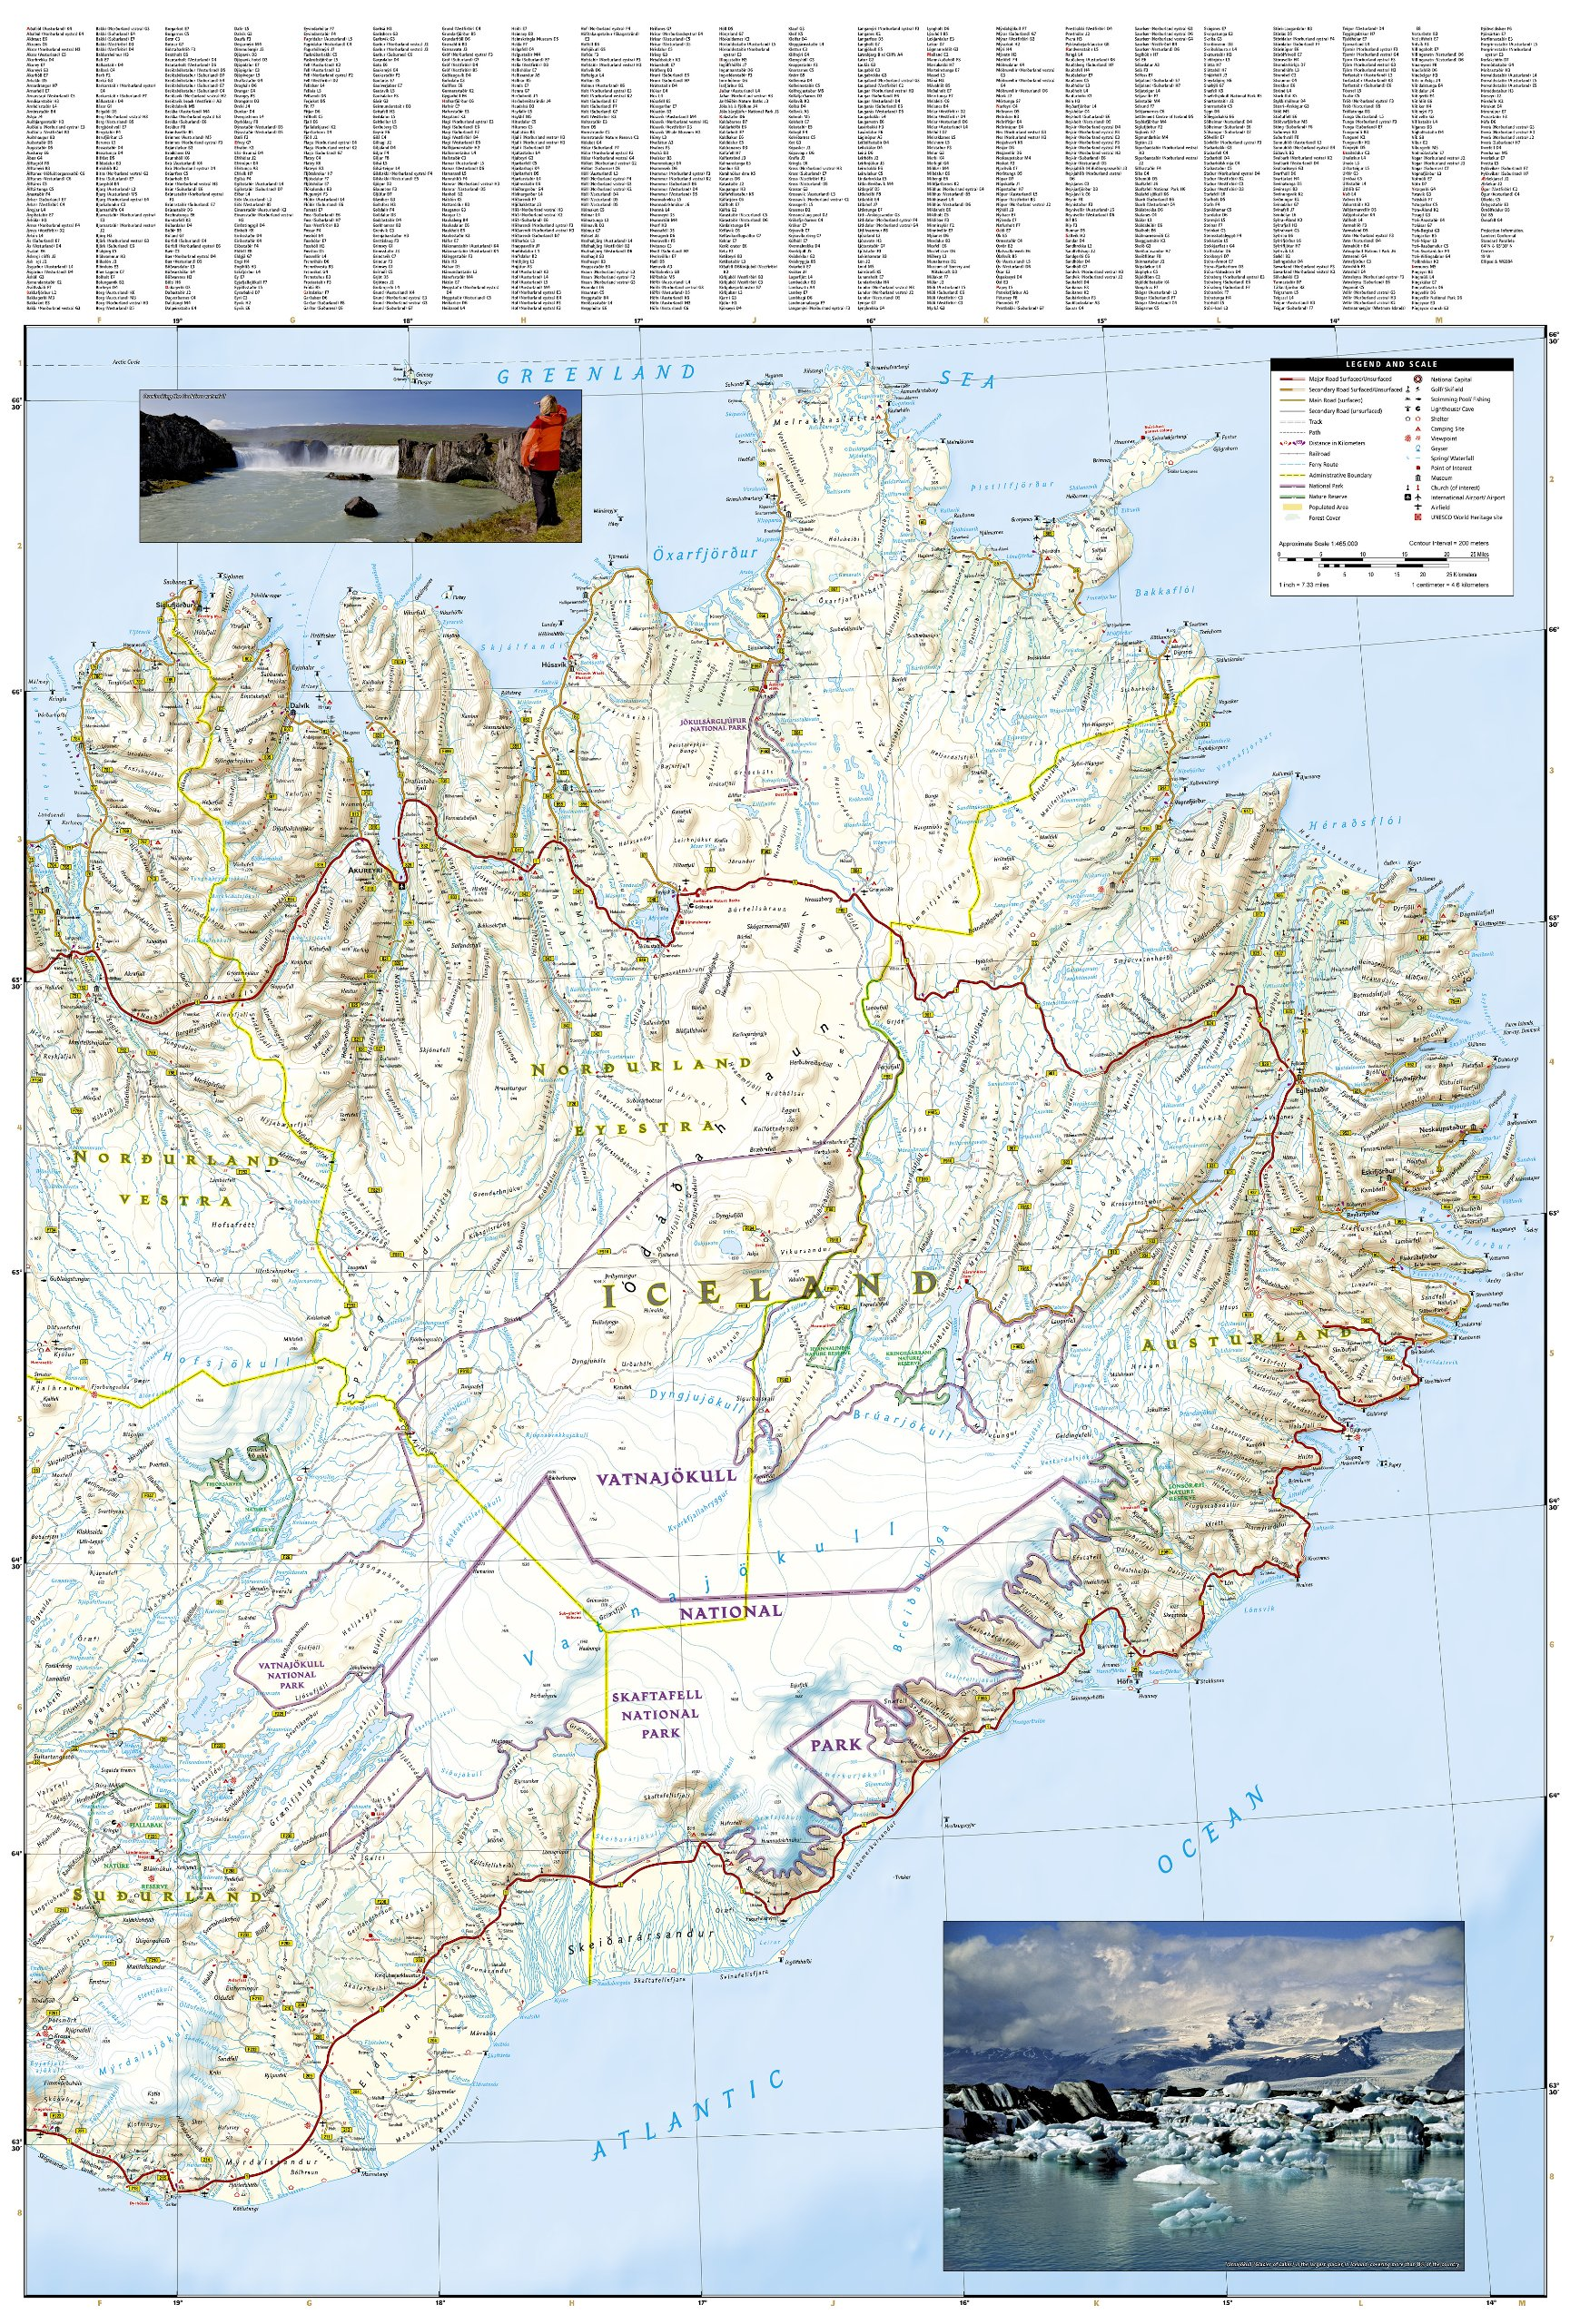 Iceland travel maps international adventure map amazon iceland travel maps international adventure map amazon national geographic maps libros en idiomas extranjeros gumiabroncs